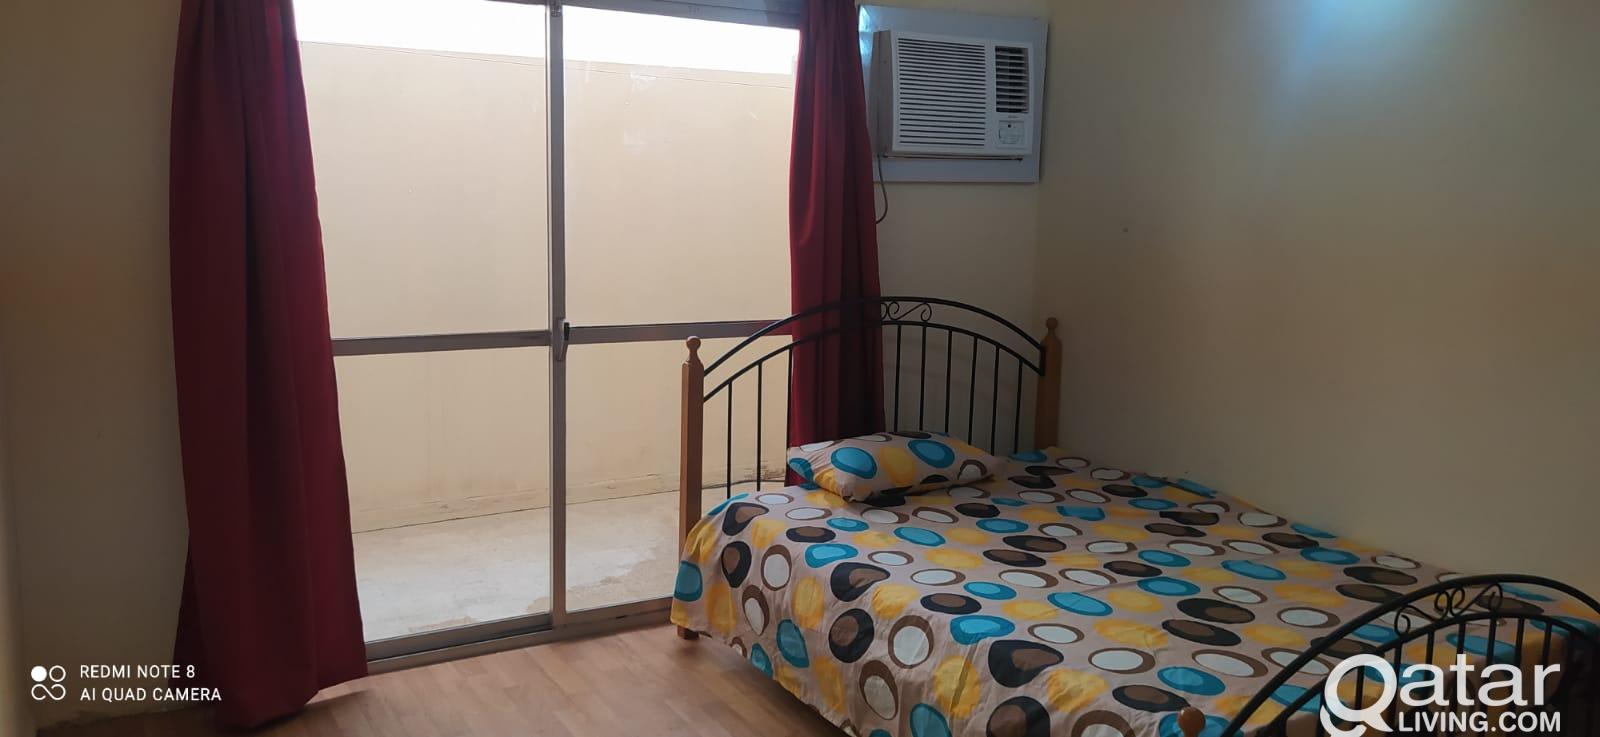 Unfurnished Family Room Apartment Available From August 2021 Call Or Whatsapp 66638093 Qatar Living